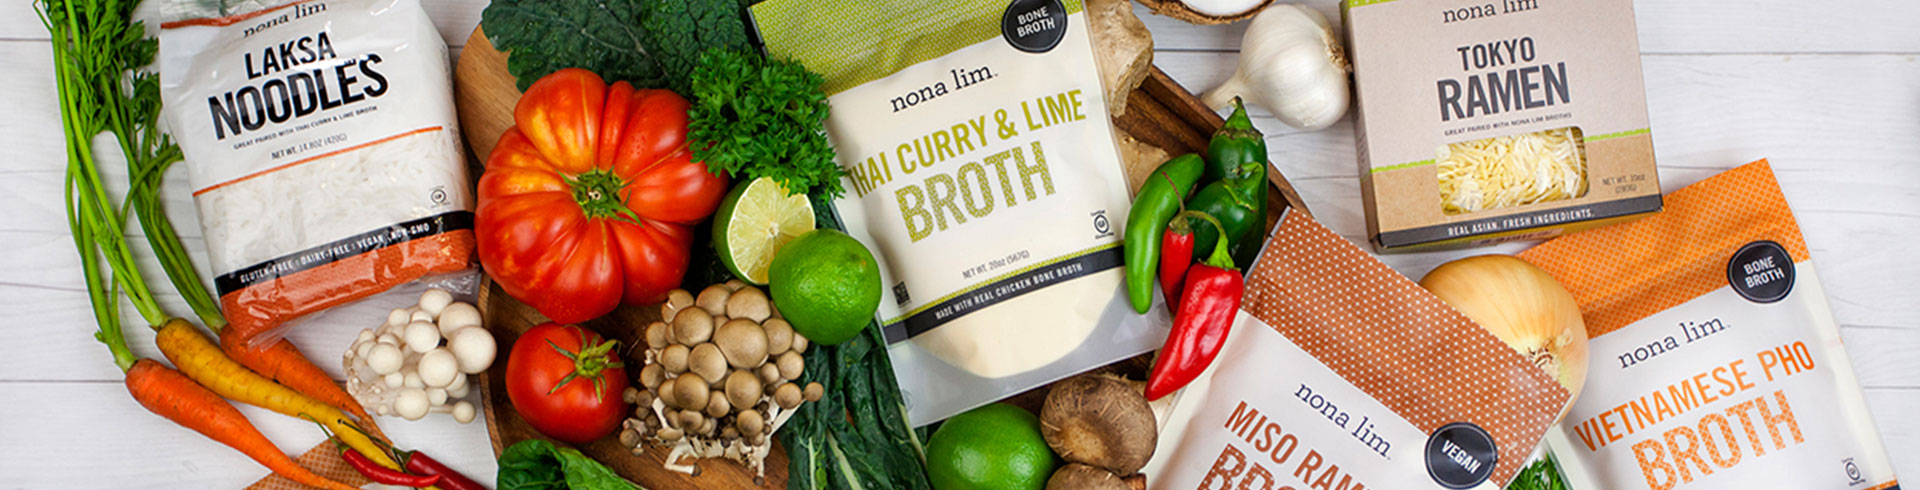 Image result for nona lim bone broth ingredients